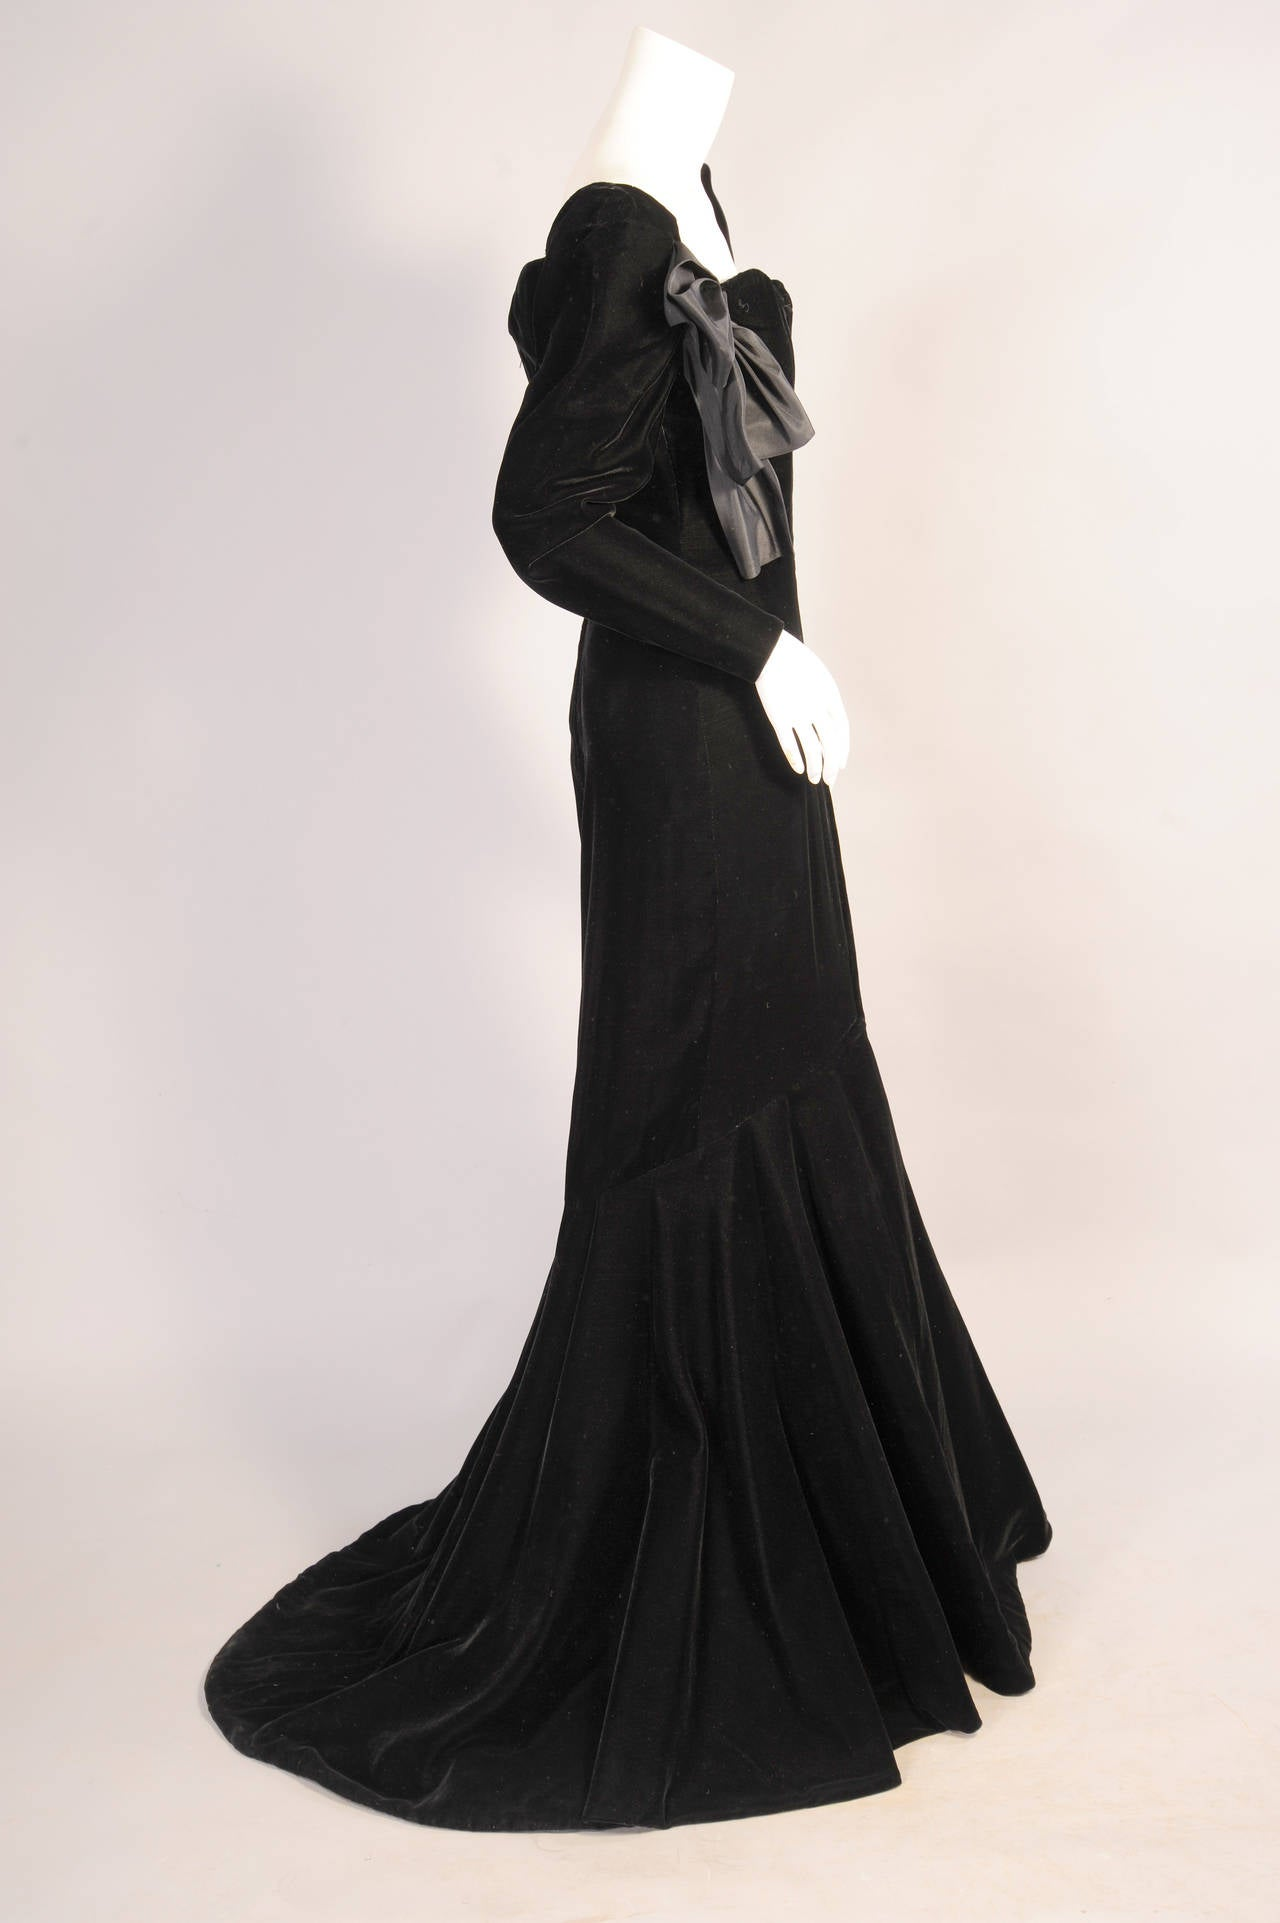 Yves Saint Laurent Haute Couture Black Silk Velvet Mermaid Gown 2